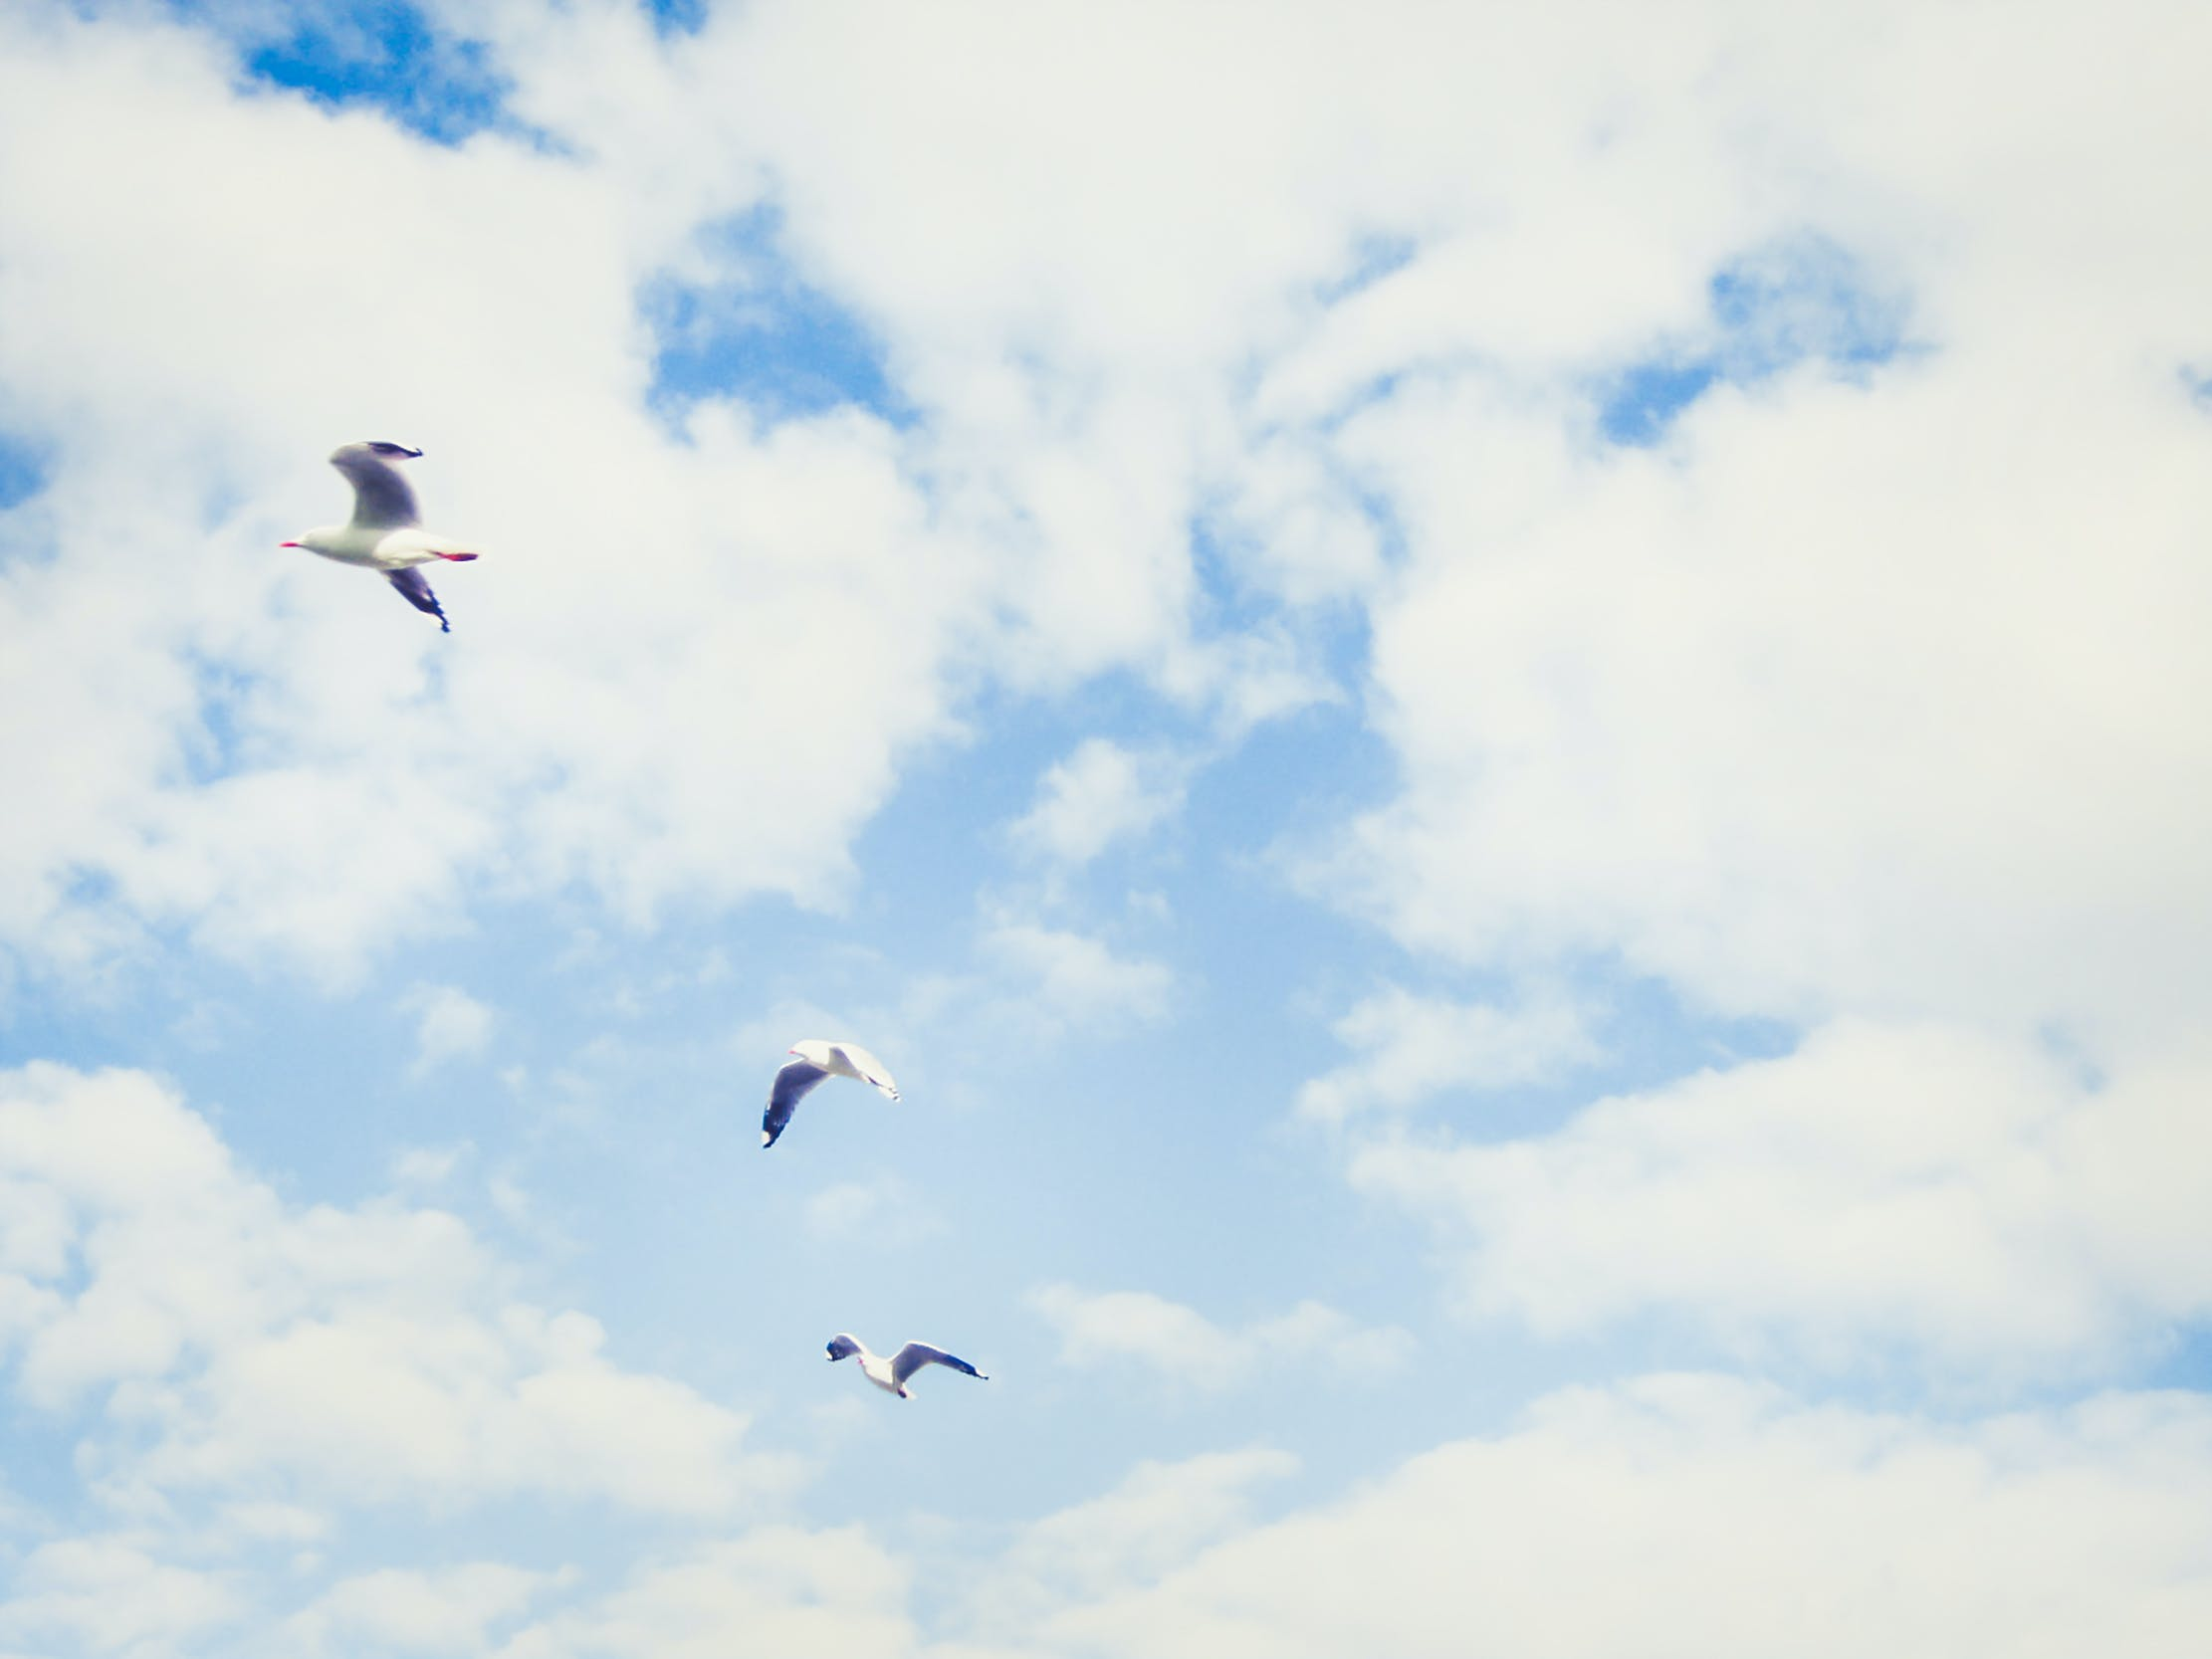 Free stock photo of birds, cloudy sky, minimalist